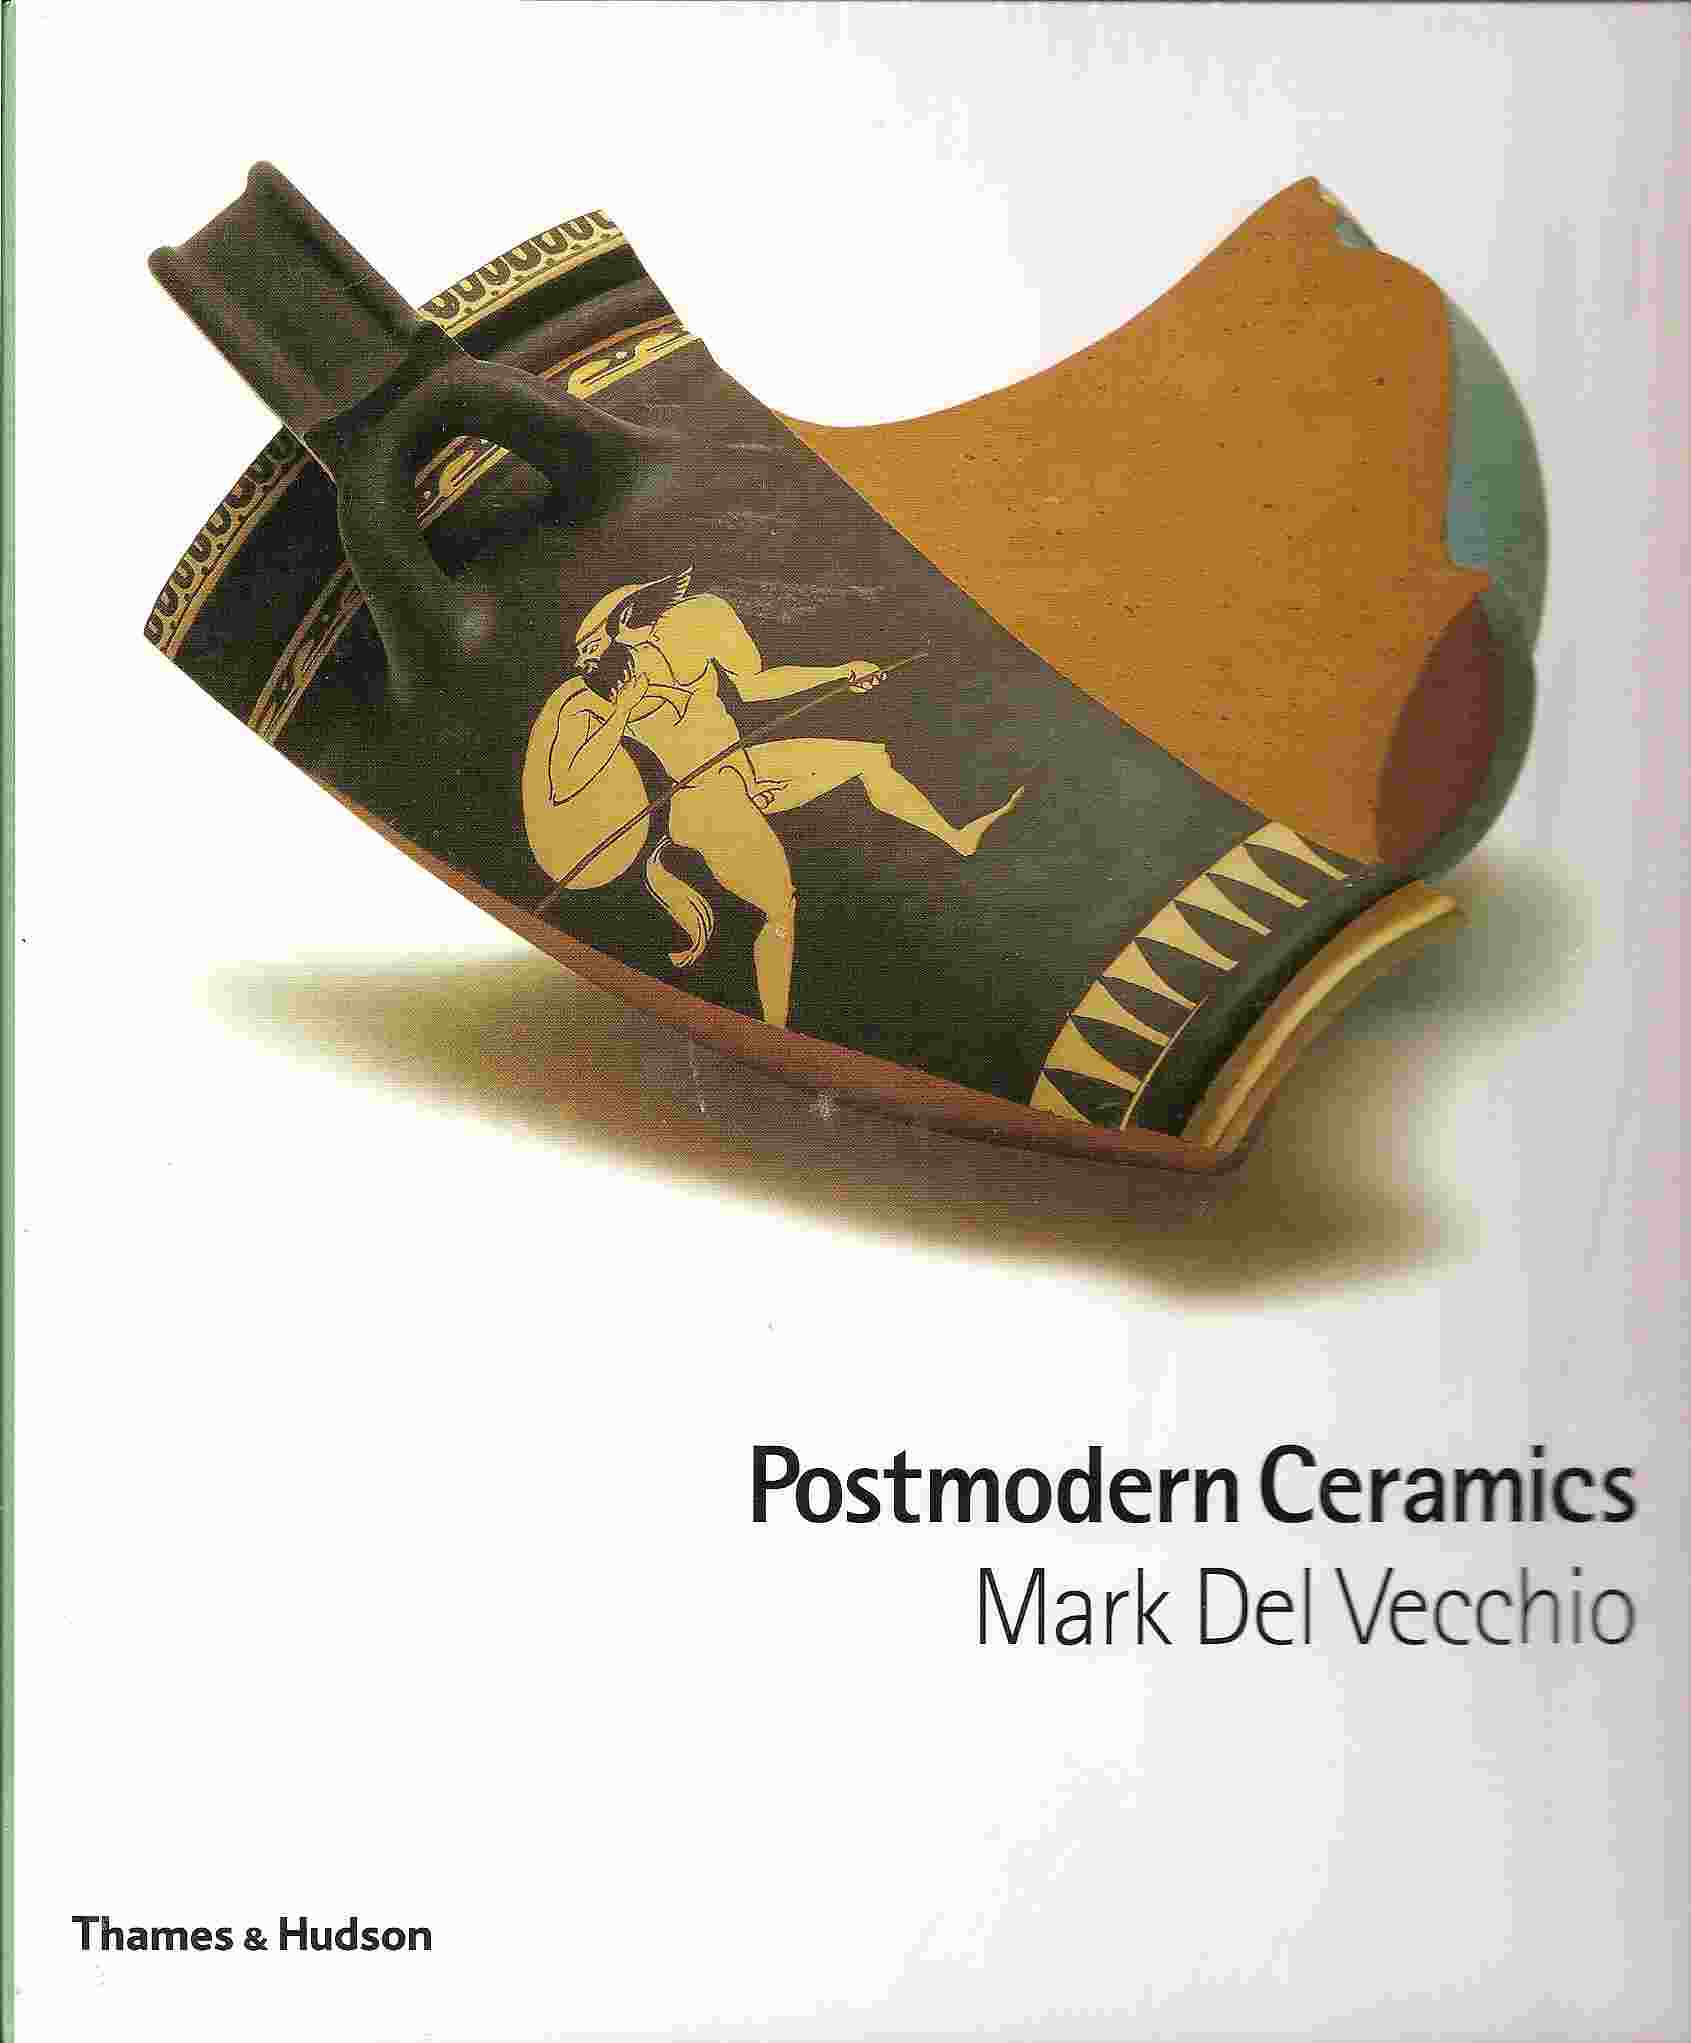 Image for POSTMODERN CERAMICS